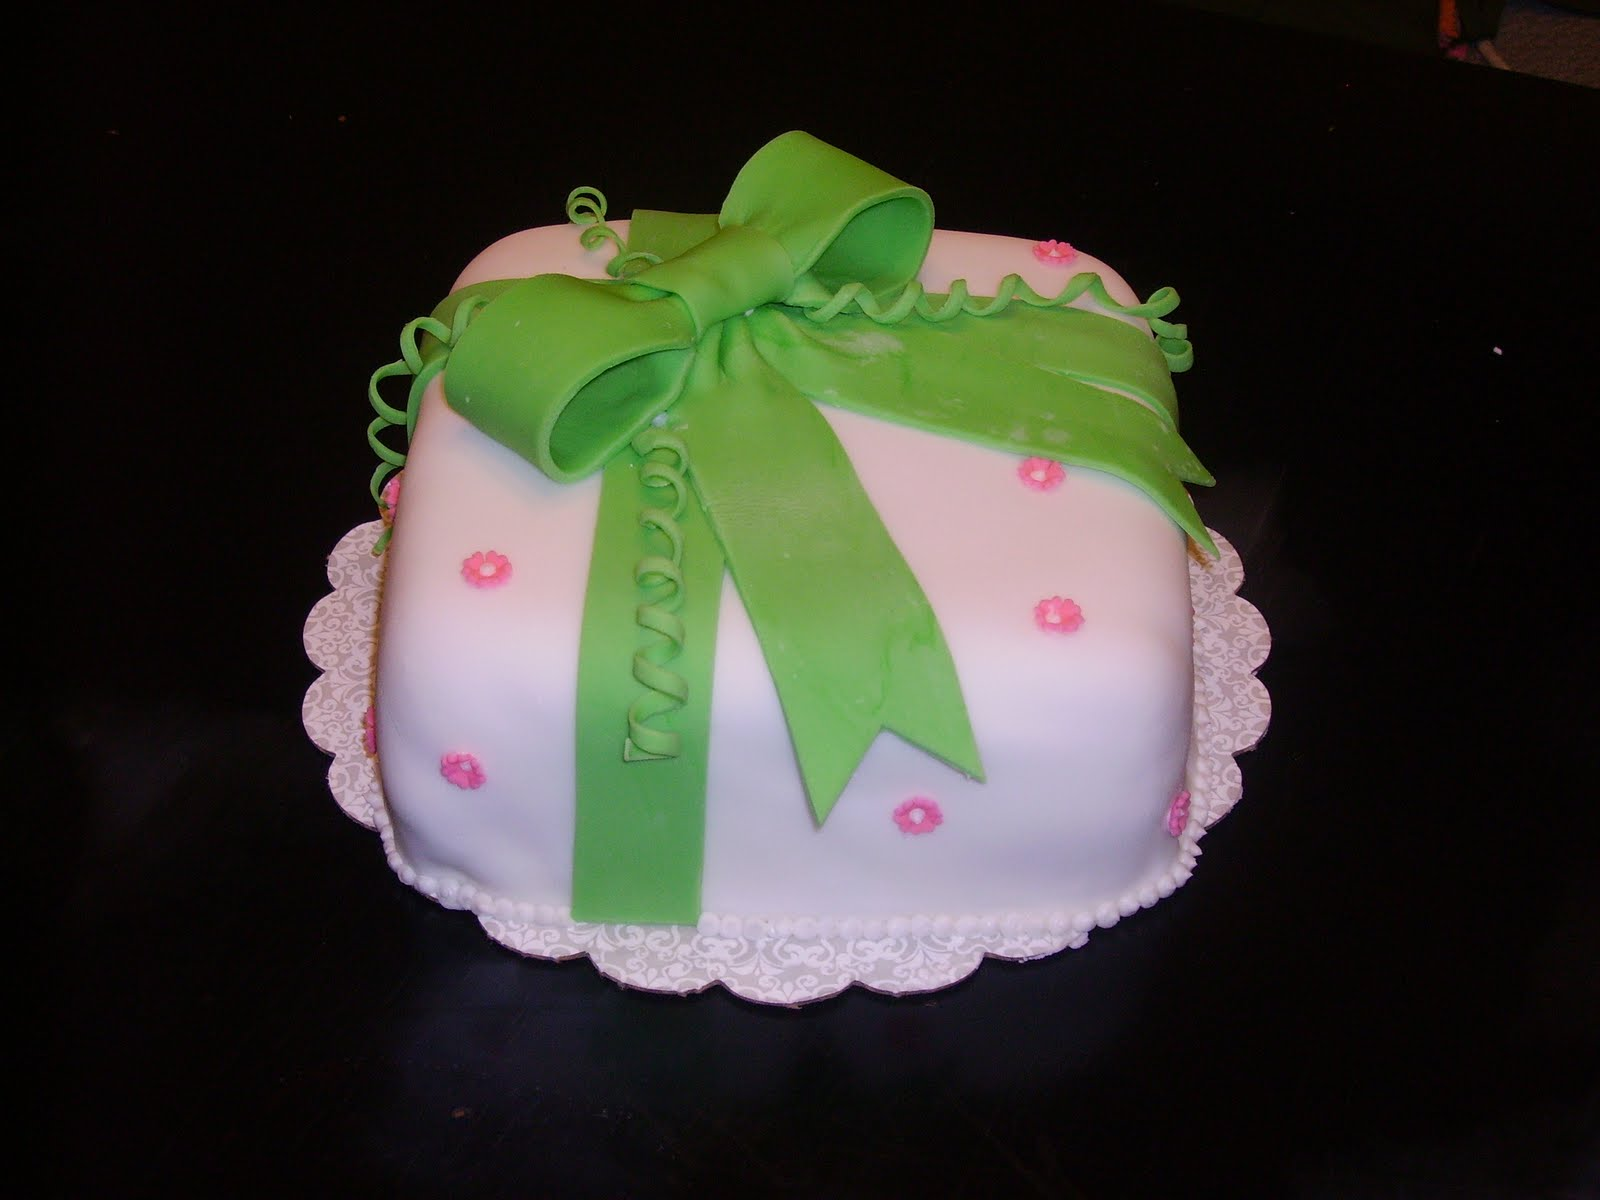 Cake Decorating Course Albury Wodonga : Baby Steps: Wilton Cake Decorating Course 3 Class 2